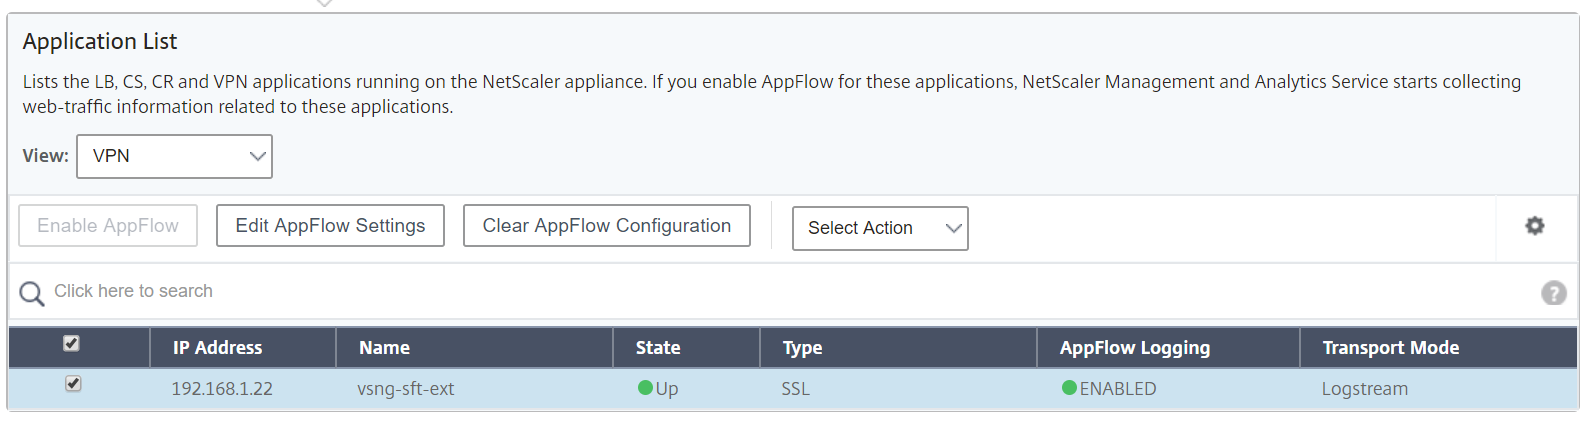 Citrix Management and Analytics Service - Enable APP FLOW